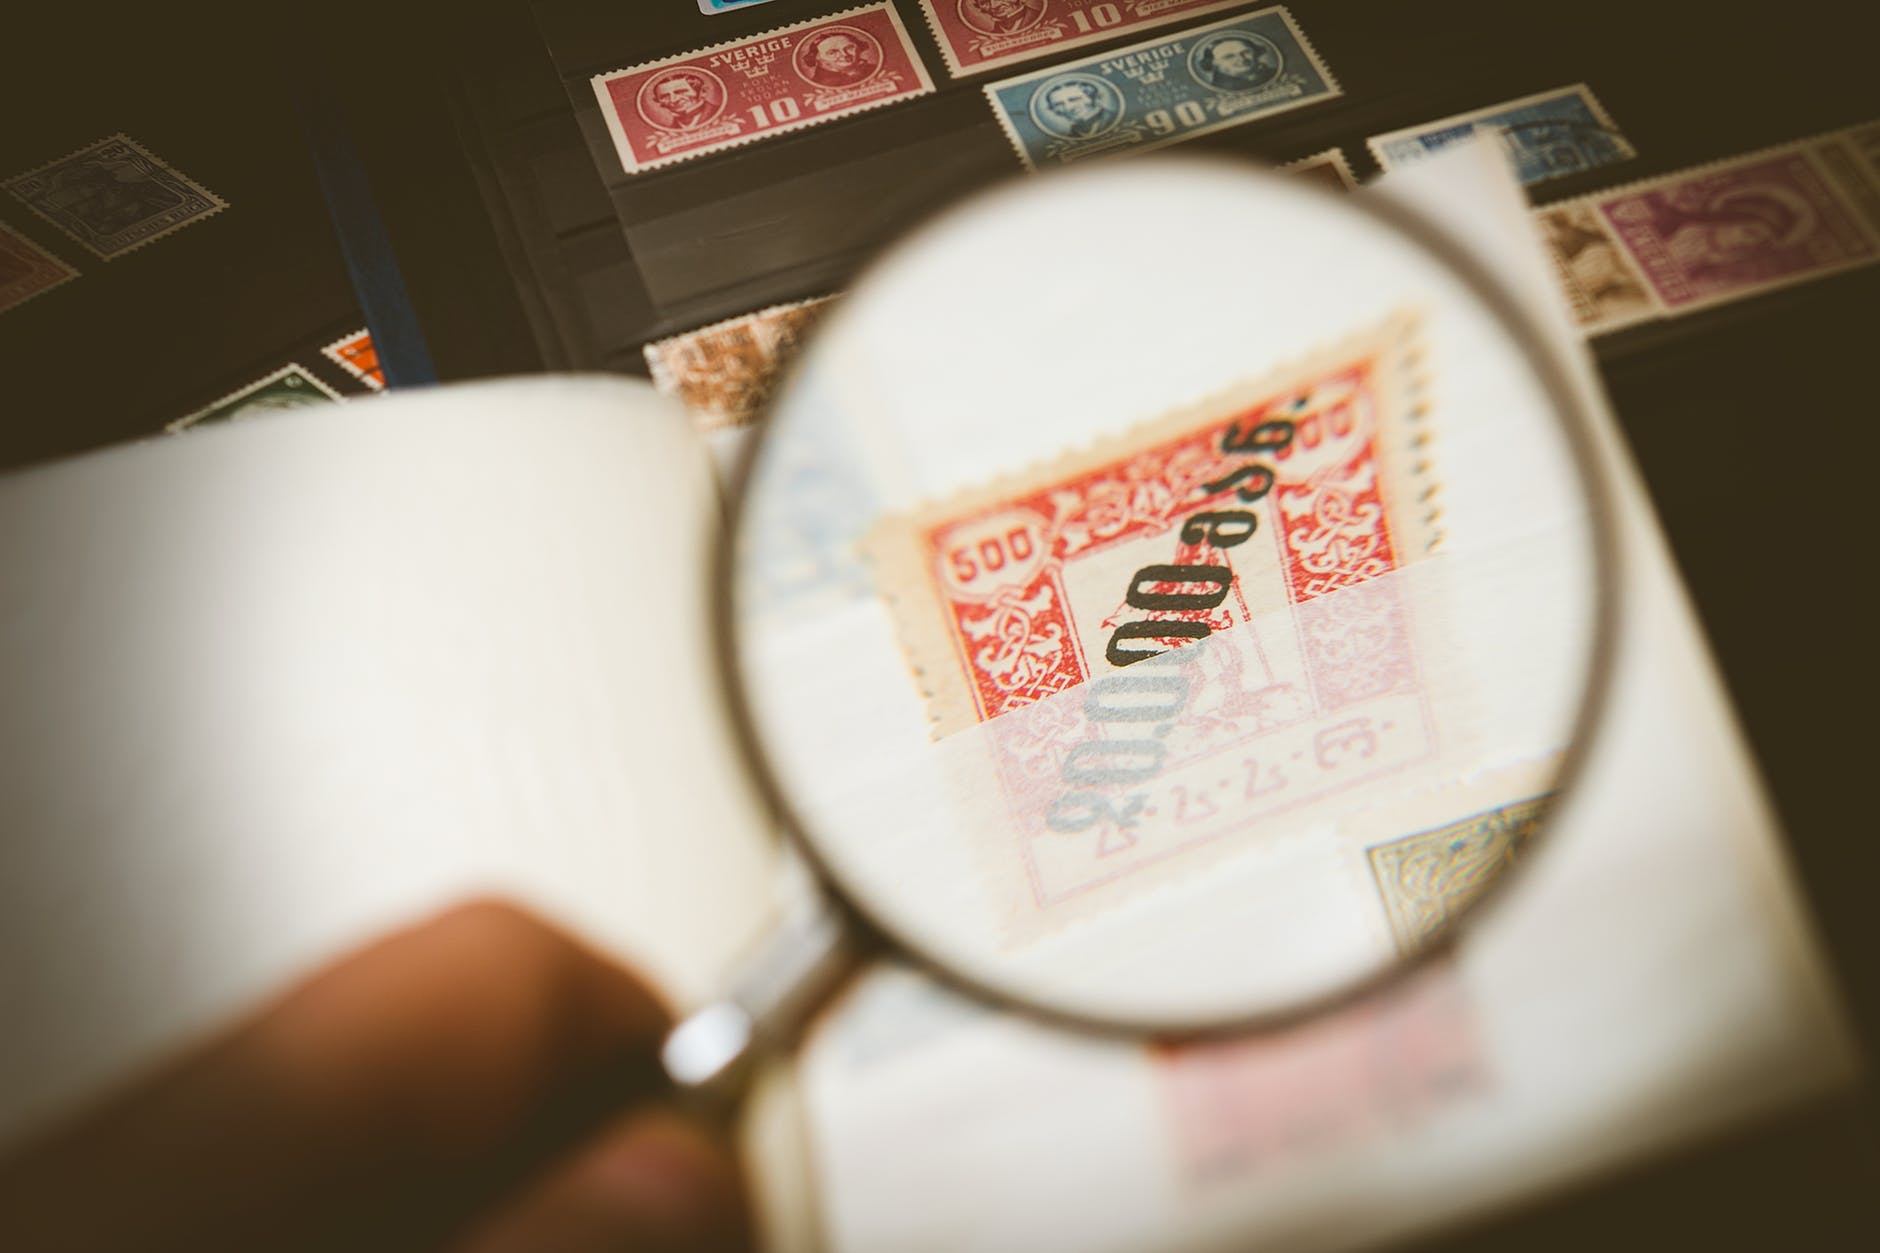 Online vs Offline: Where's best for buying stamps?